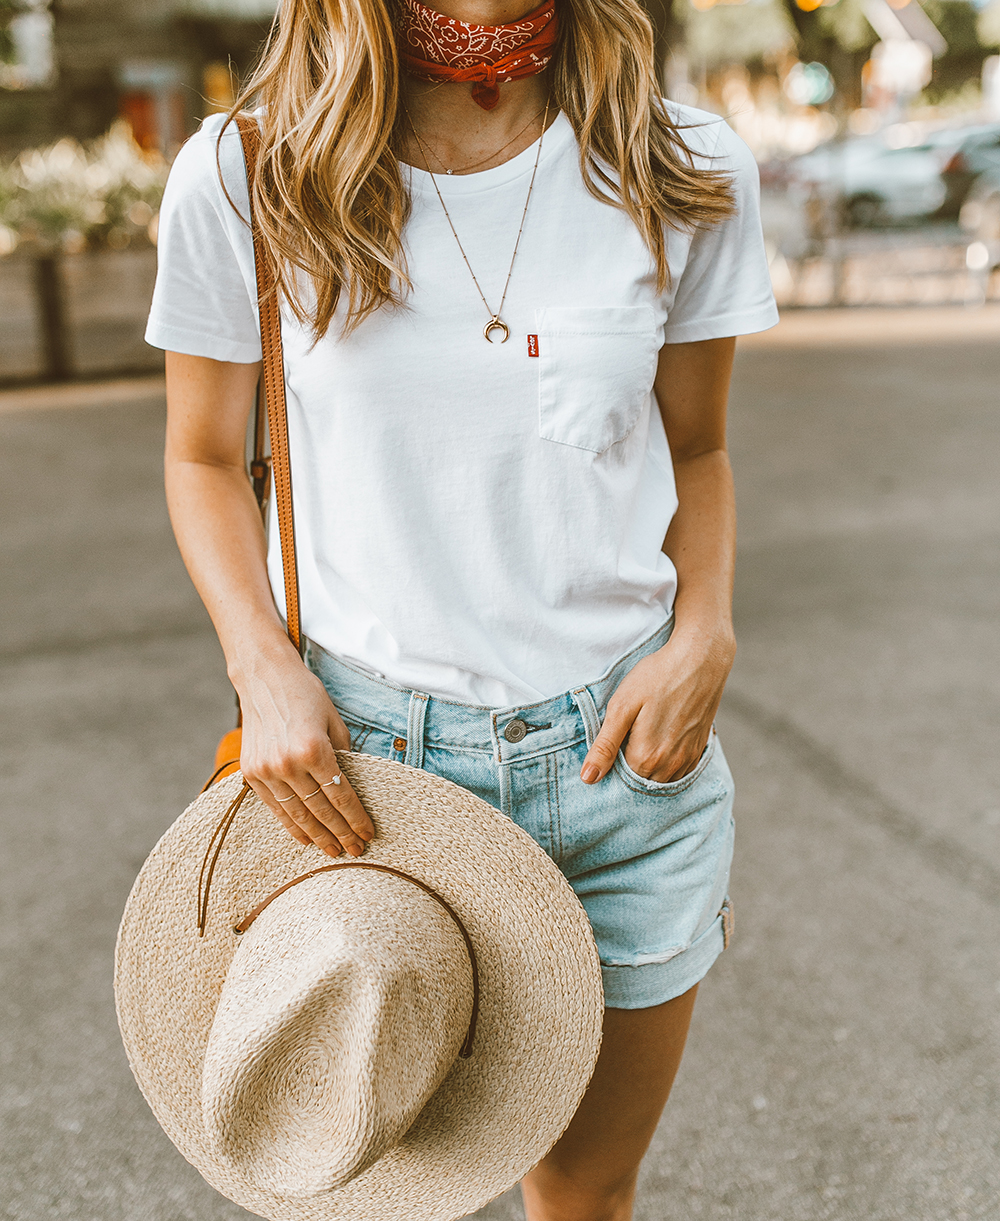 livvyland-blog-olivia-watson-austin-texas-fashion-style-blogger-what-to-wear-levis-501-denim-shorts-festival-outfit-idea-8